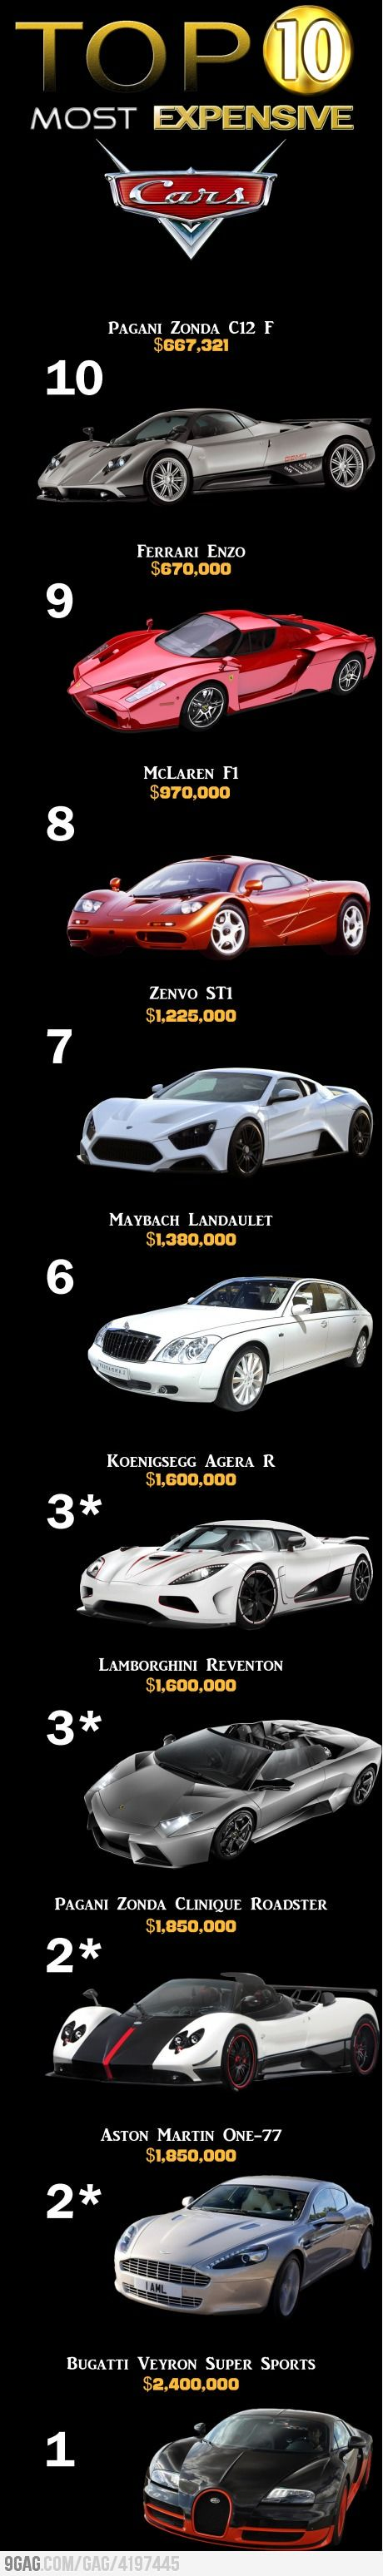 Most Expensive Cars In The World - Of course, mine would be NUMBER 1!!!!!